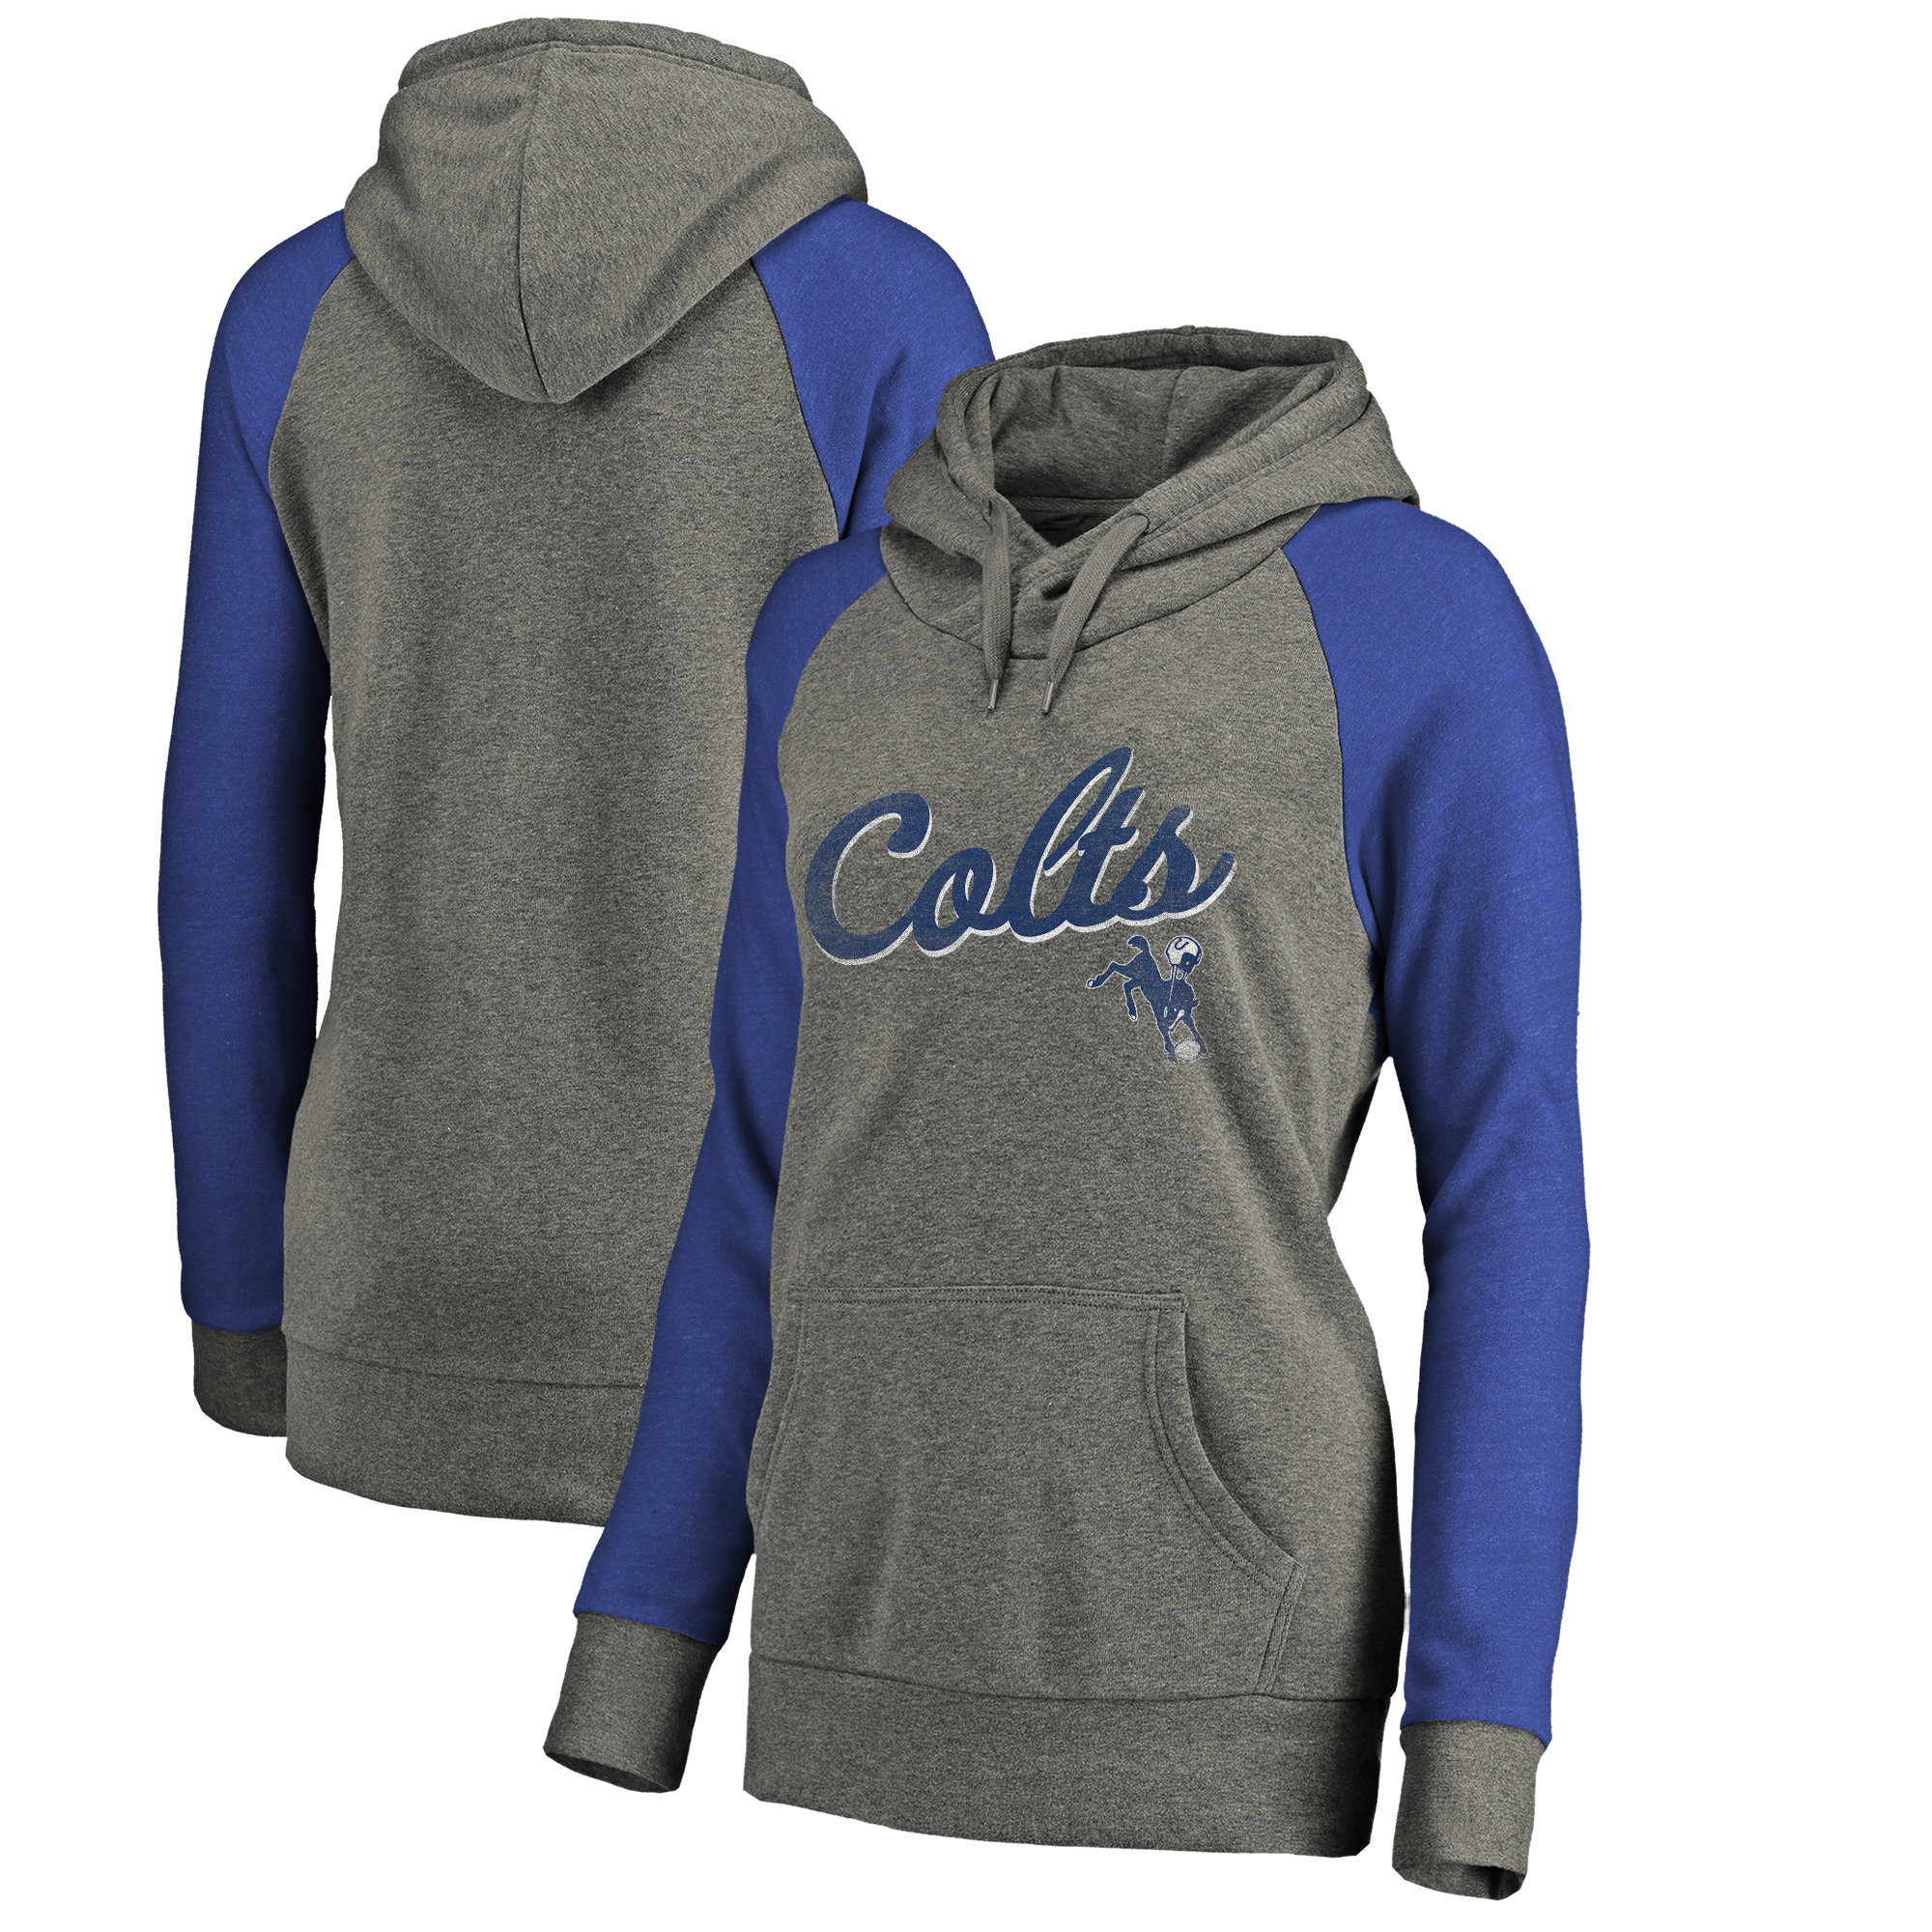 Indianapolis Colts NFL Pro Line by Fanatics Branded Women's Timeless Collection Rising Script Tri-Blend Raglan Pullover Hoodie - Ash